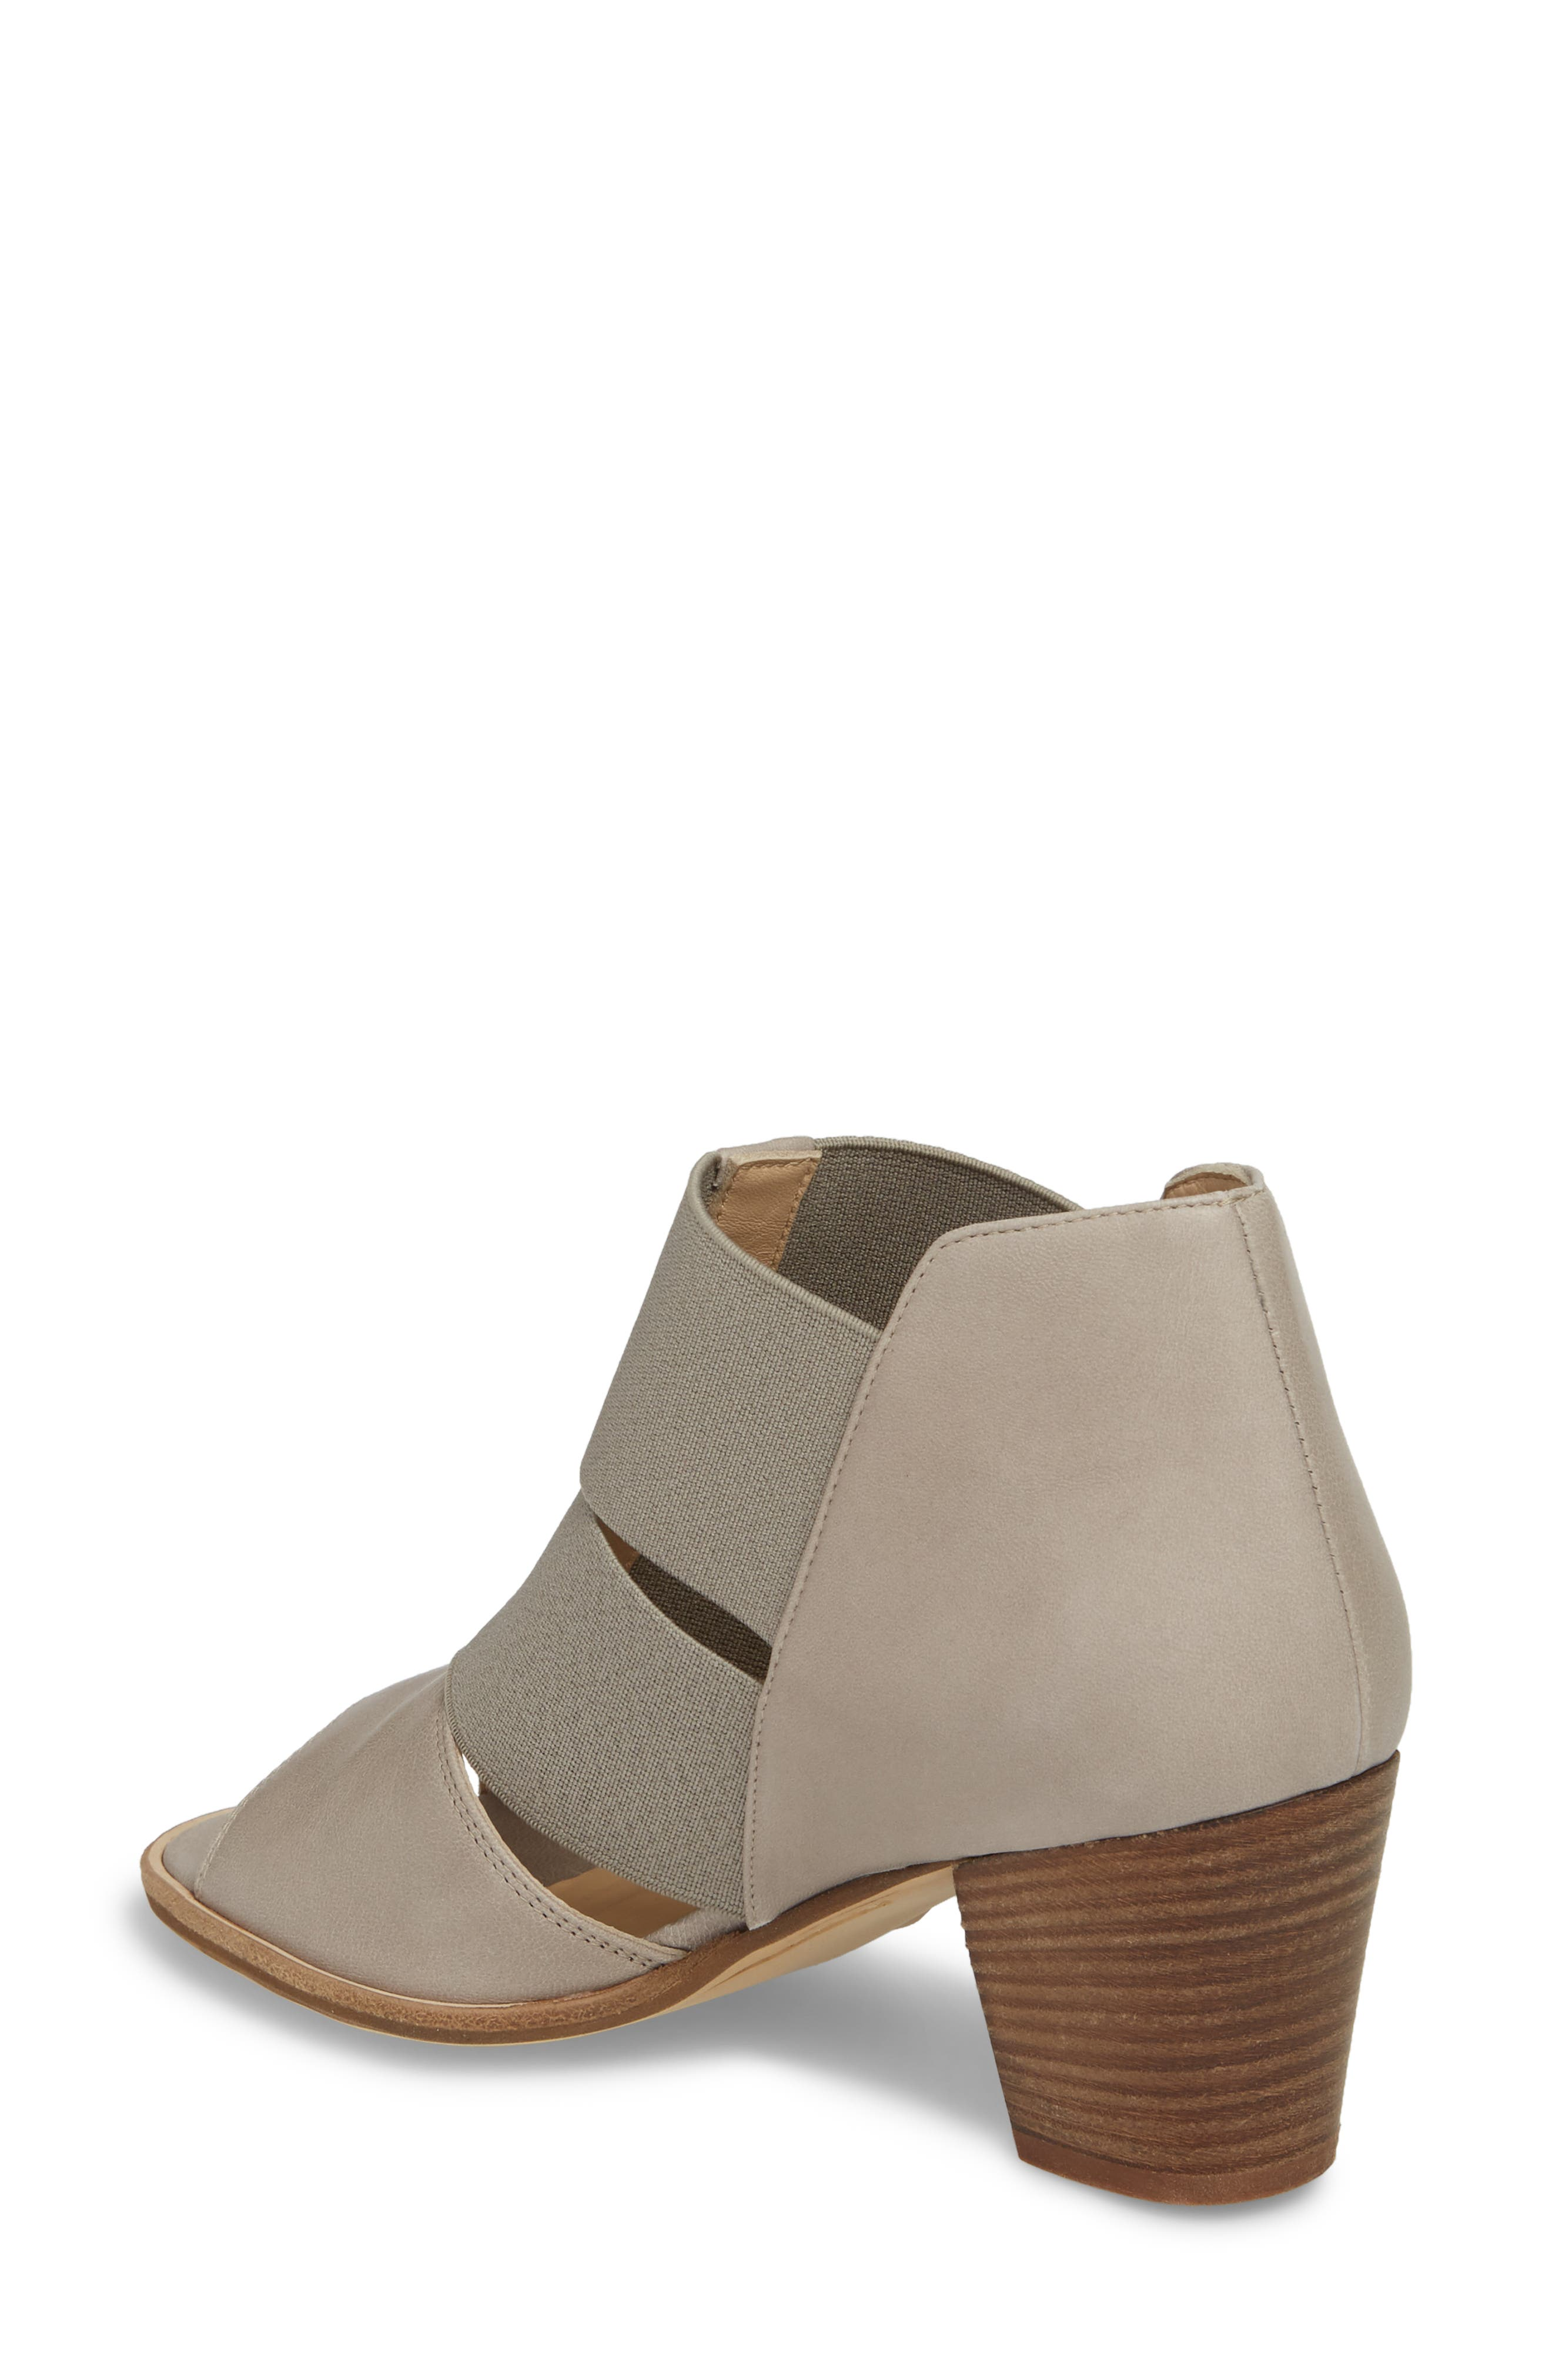 Cestello Bootie,                             Alternate thumbnail 2, color,                             PEARL LEATHER